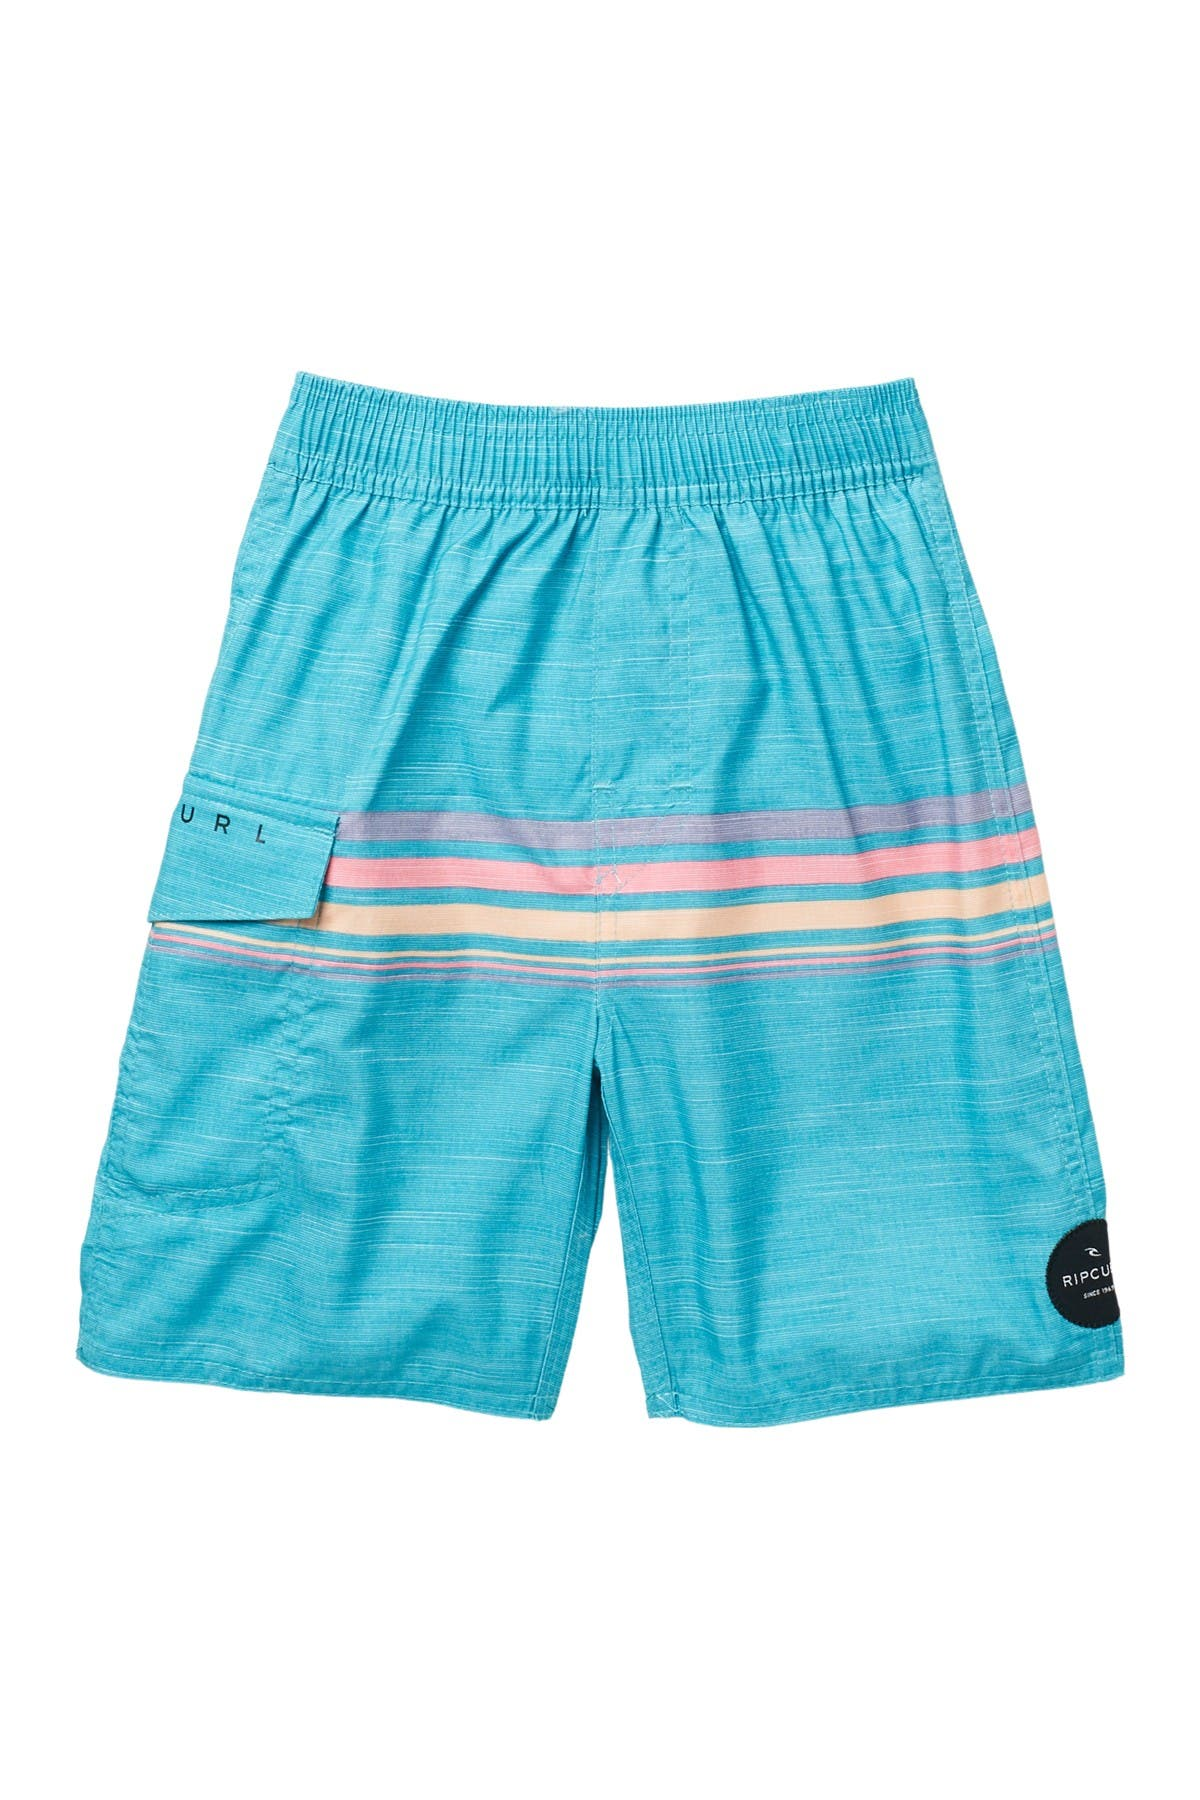 Image of Rip Curl Sideline Volley Swim Trunks